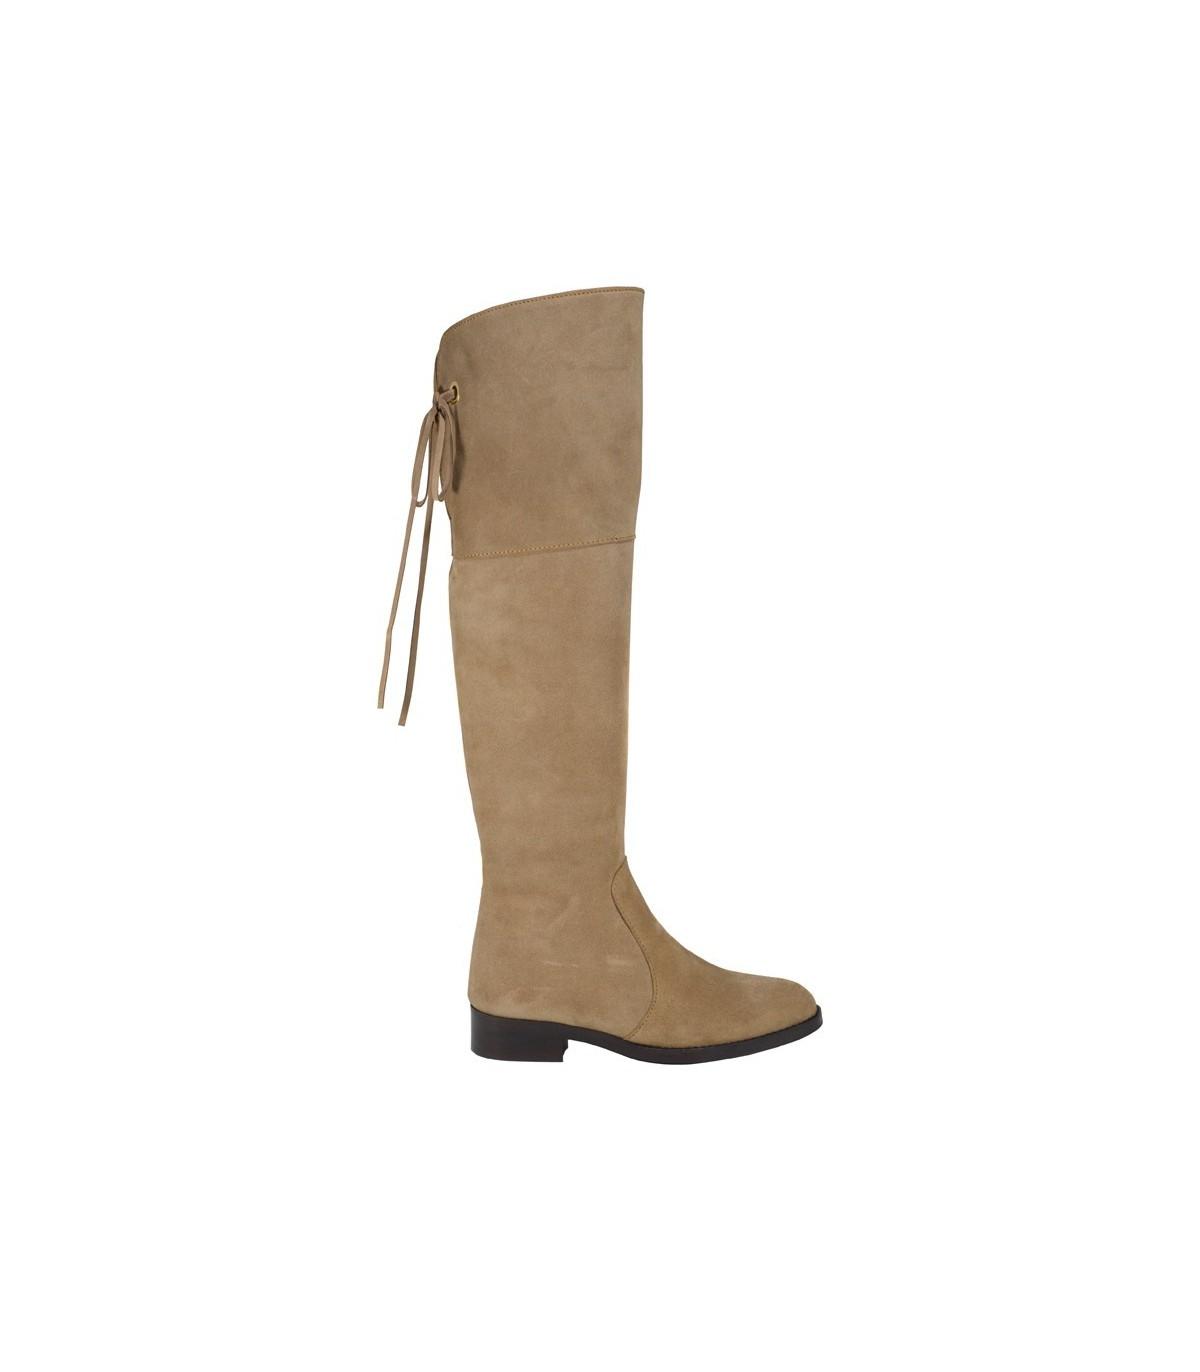 485023a321b Lou boots Michelle-09-261-22t-Μπότες-544